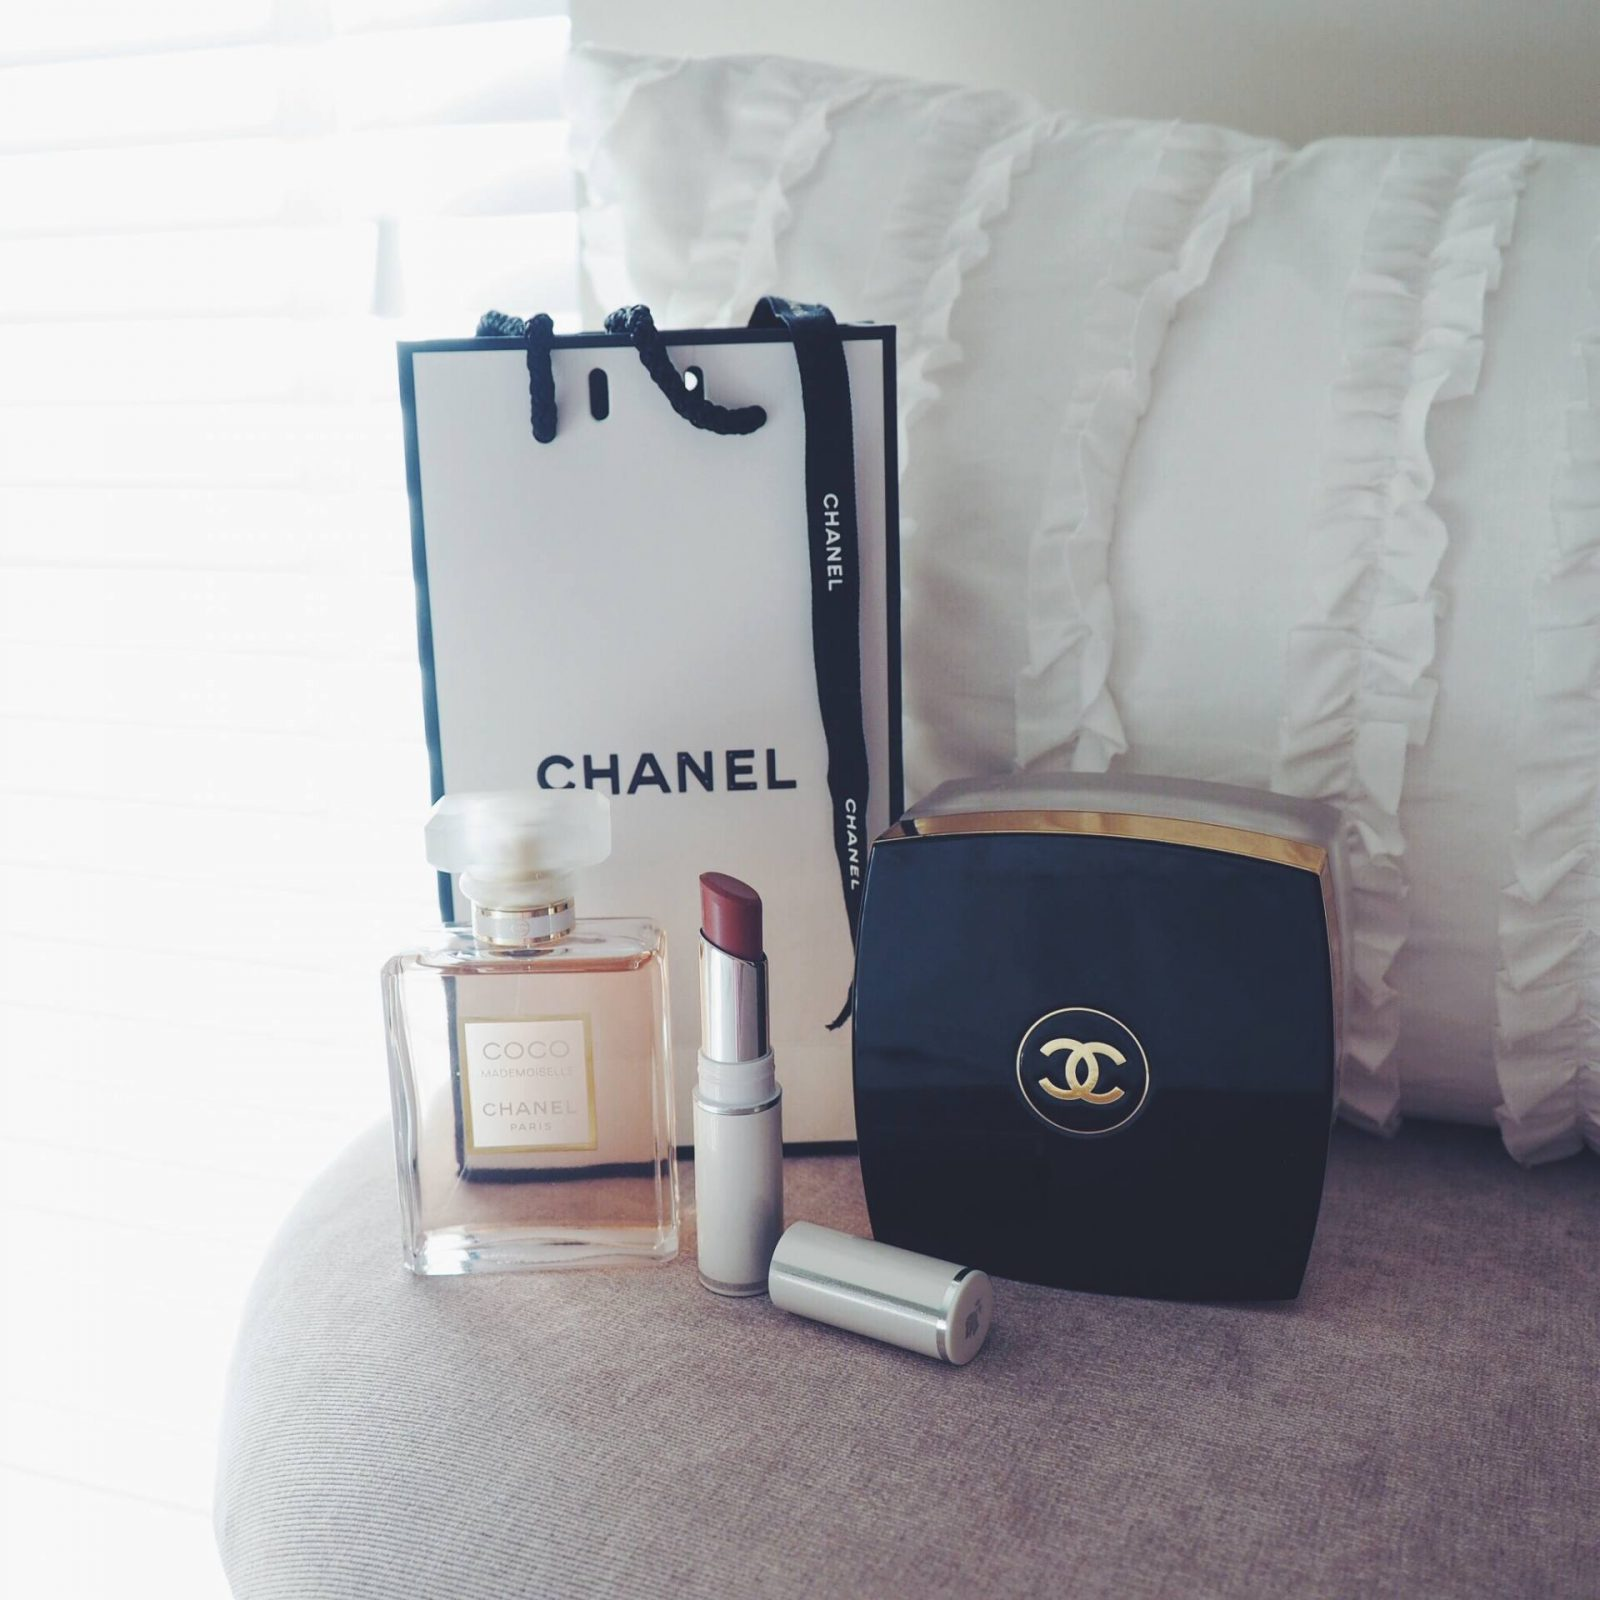 A picture of designer make-up by Chanel and Lancome make-up